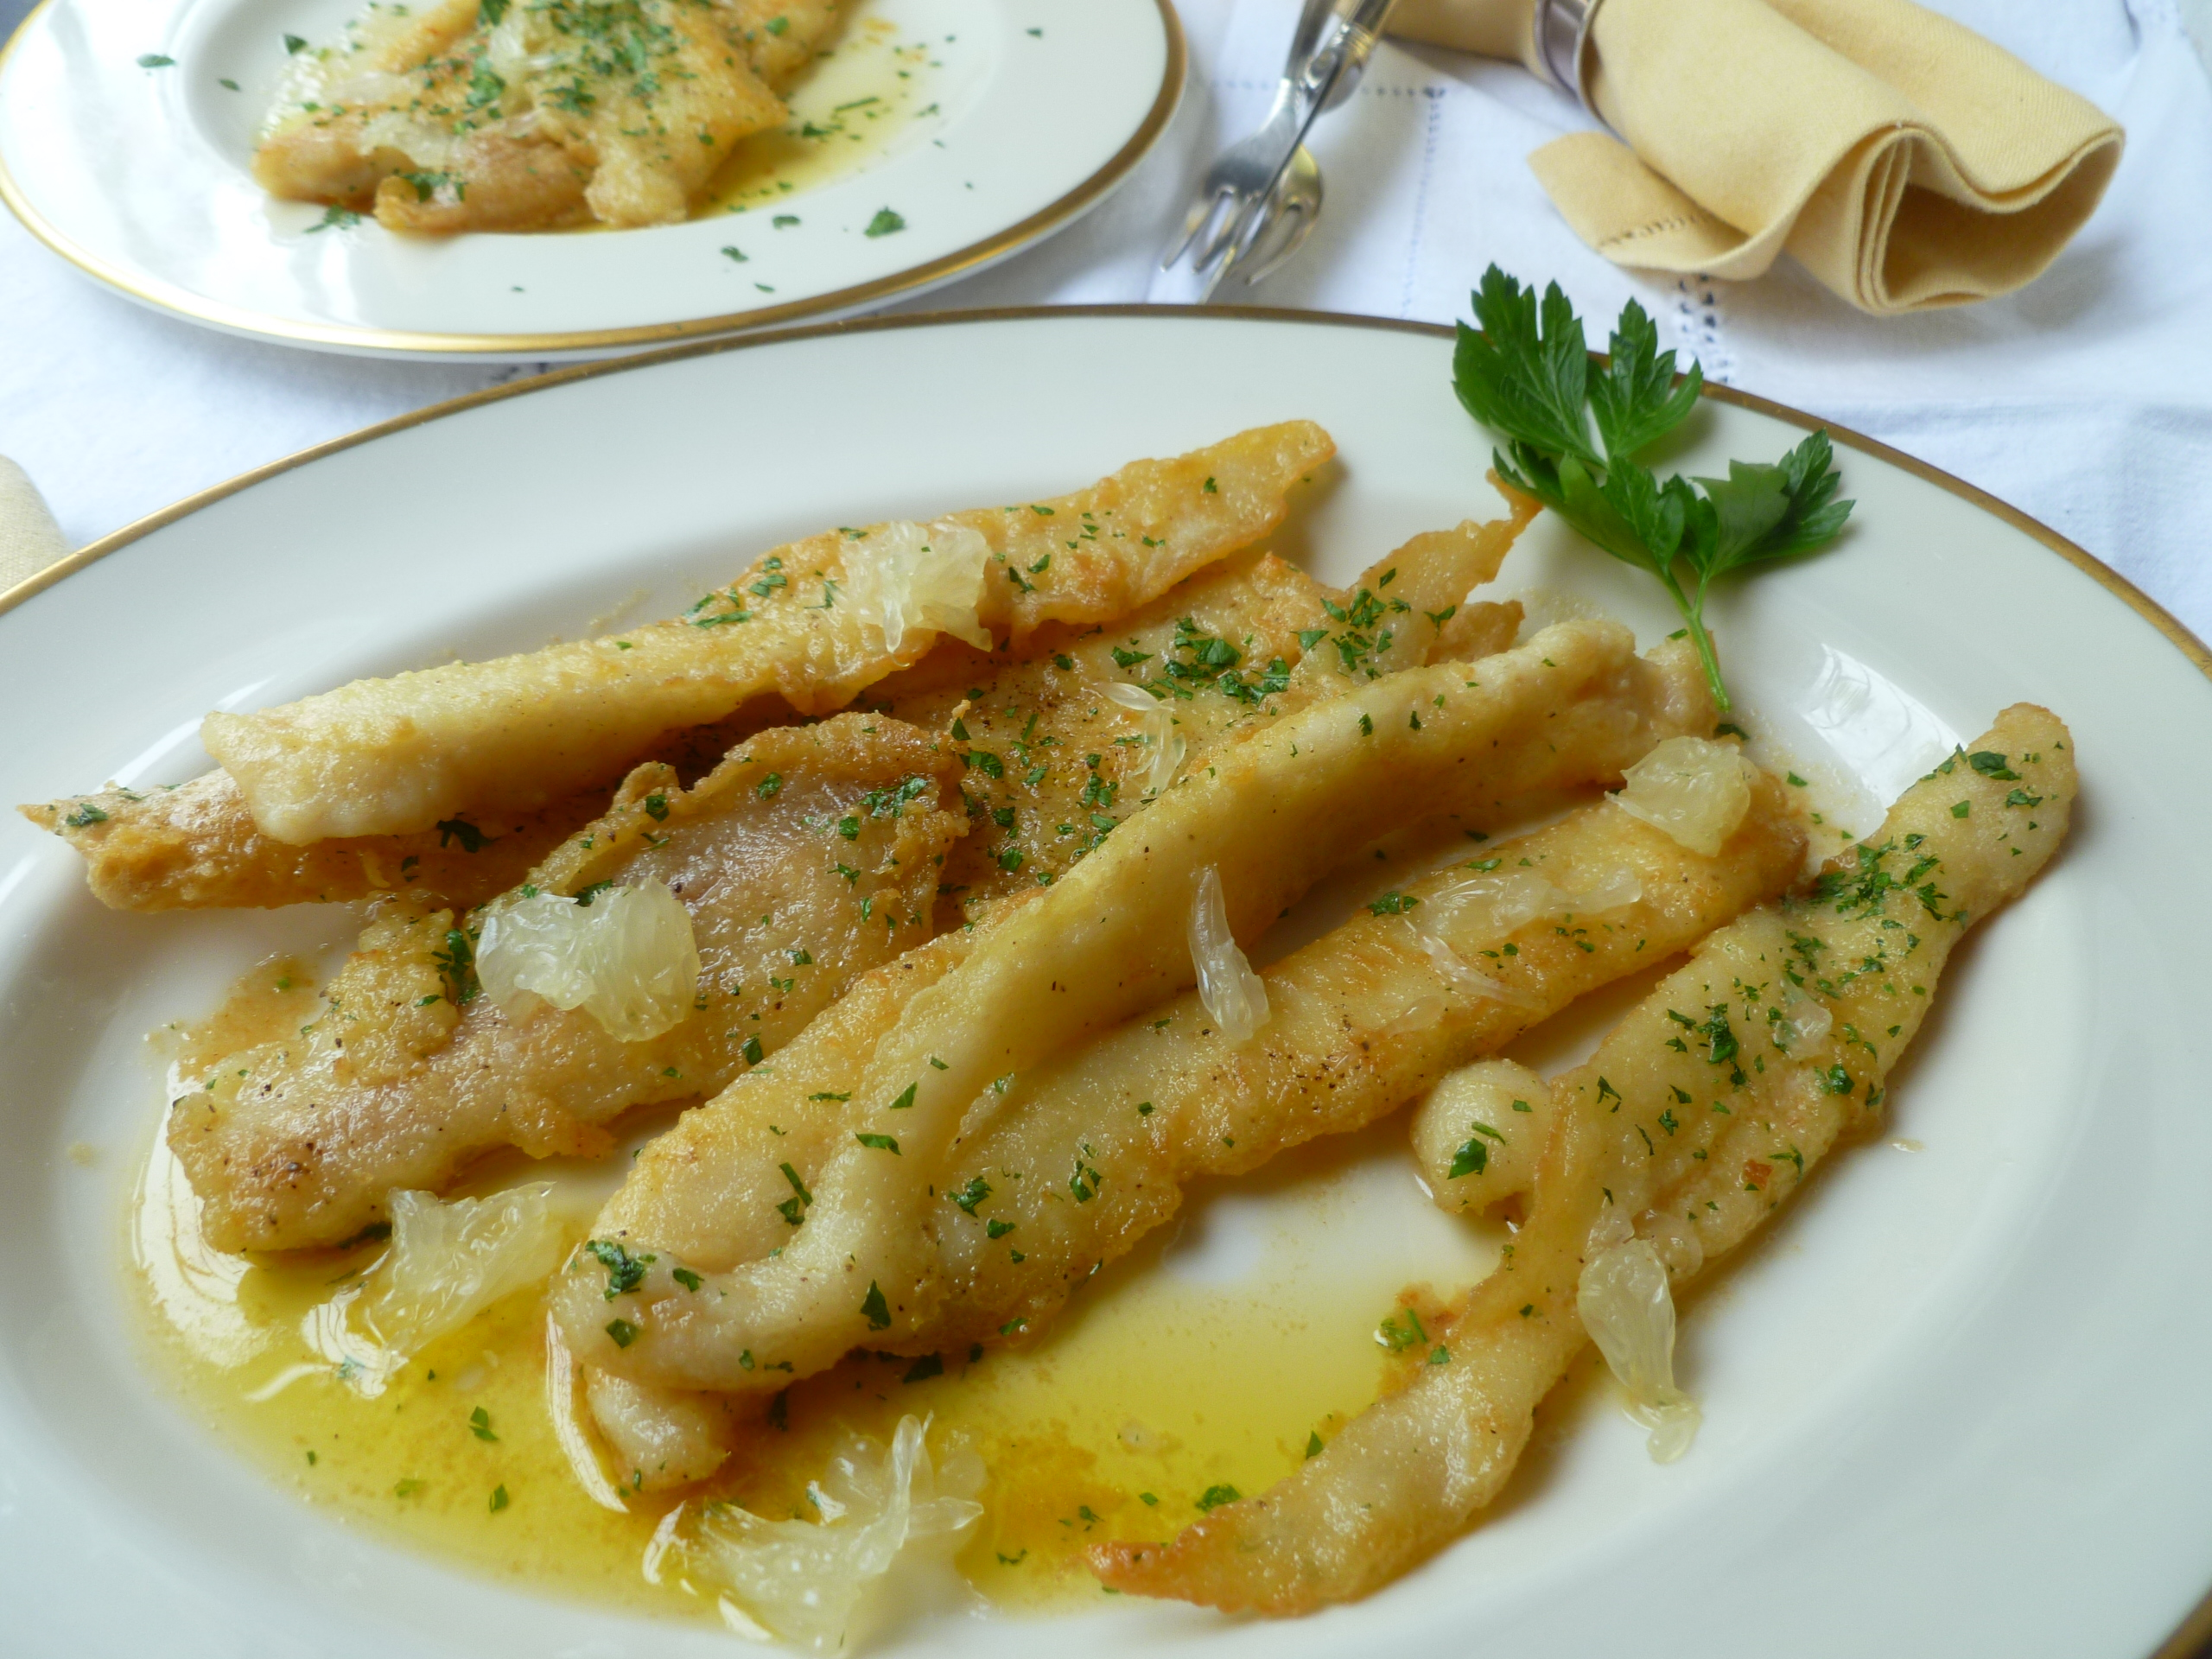 Fillets of sole or flounder with lemon butter sauce for Sole fish recipes